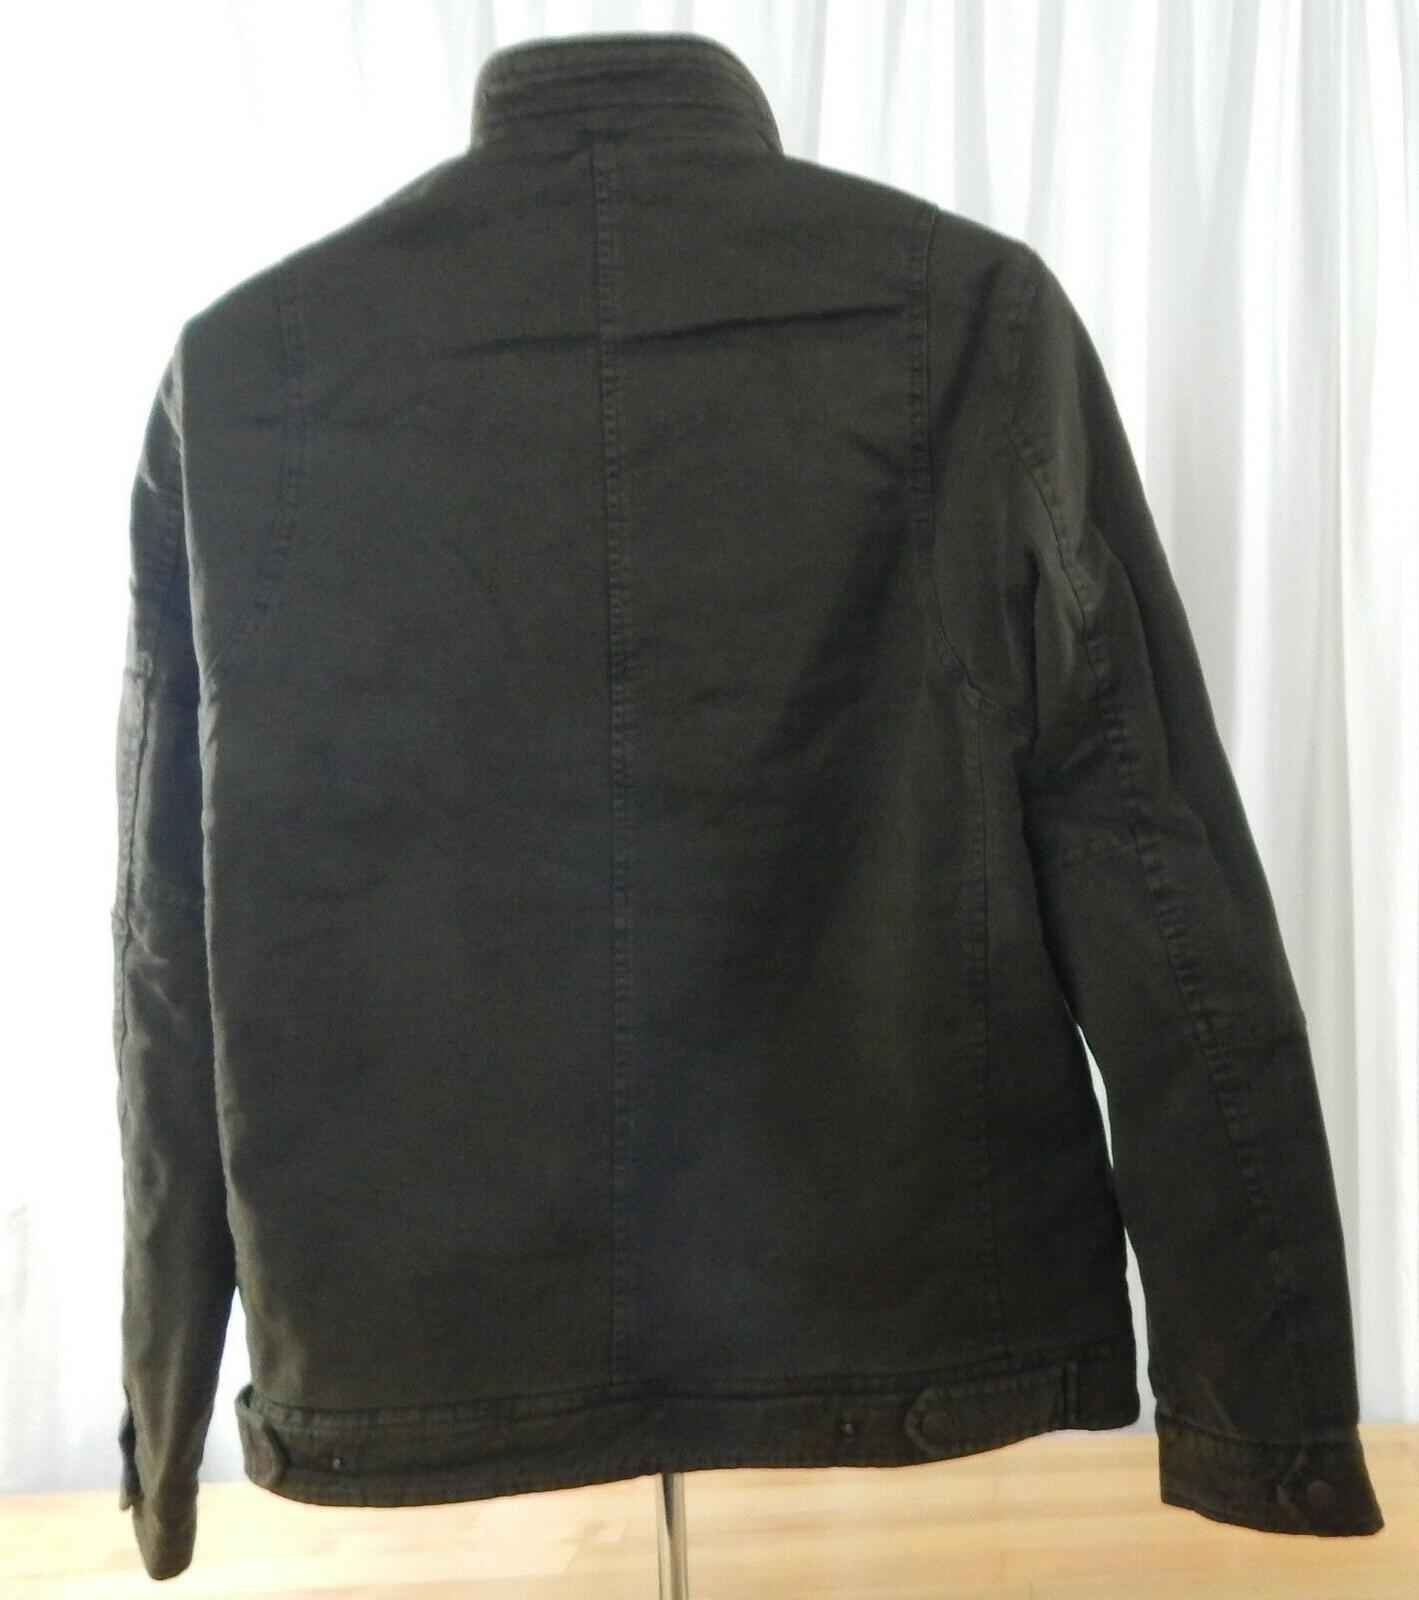 NWT Men's Barn Jacket & Snap Closure & Quilted Lining